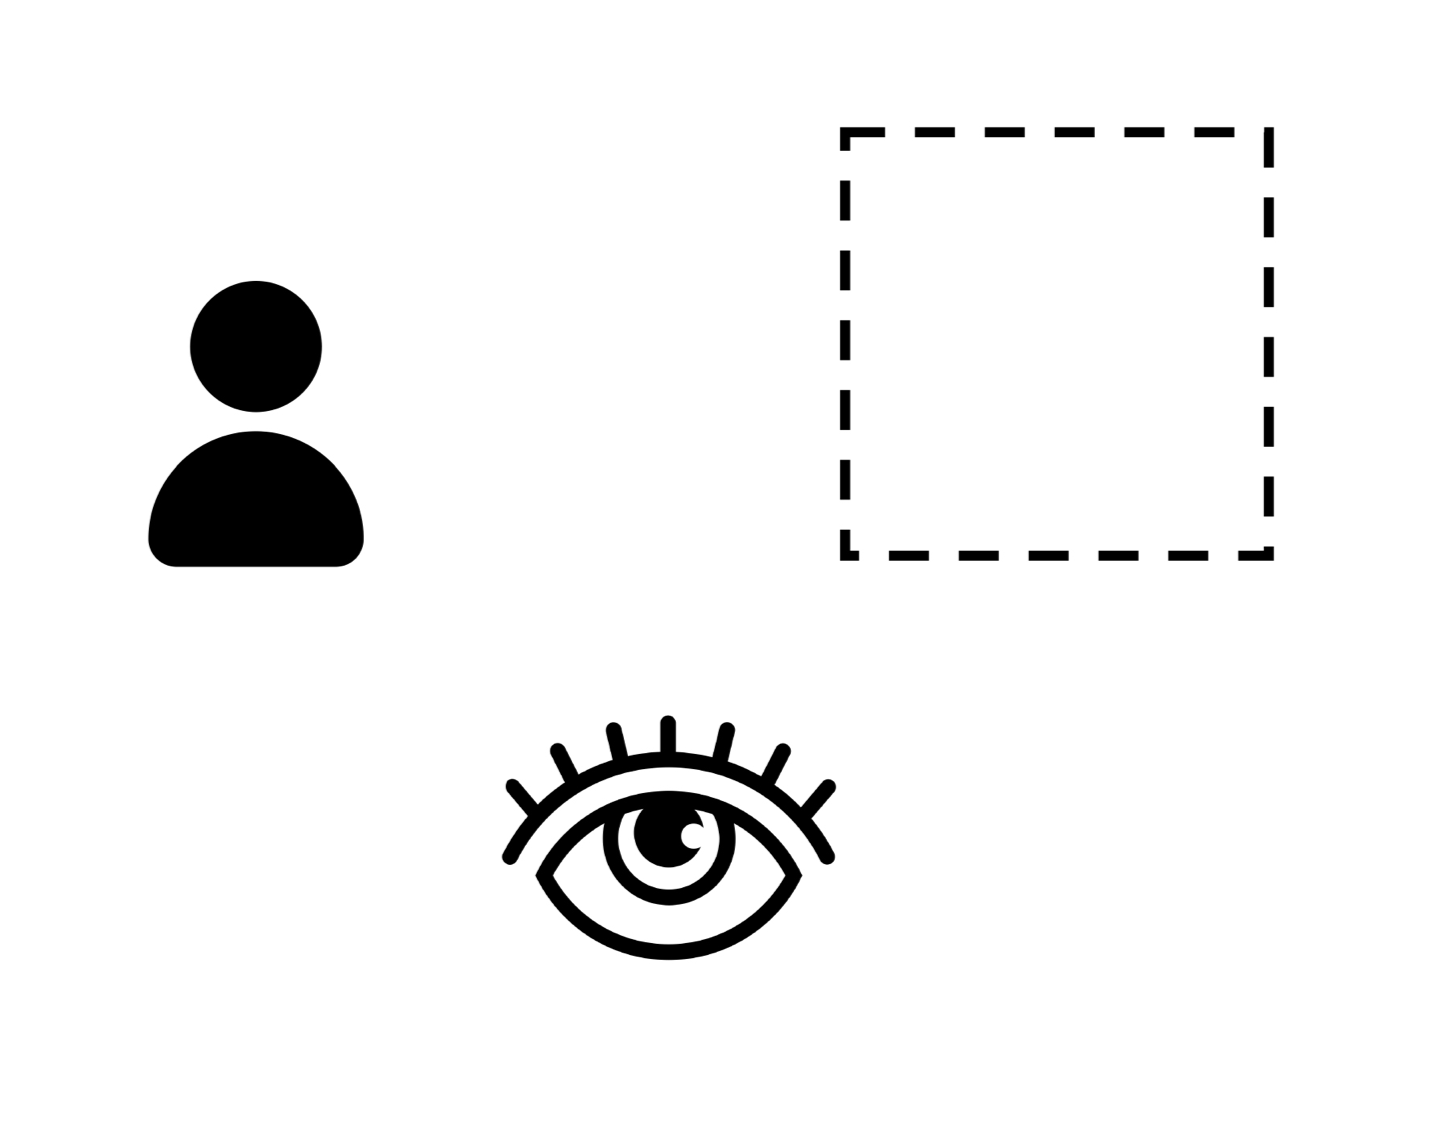 The original image - an icon of a person, a square and an eye